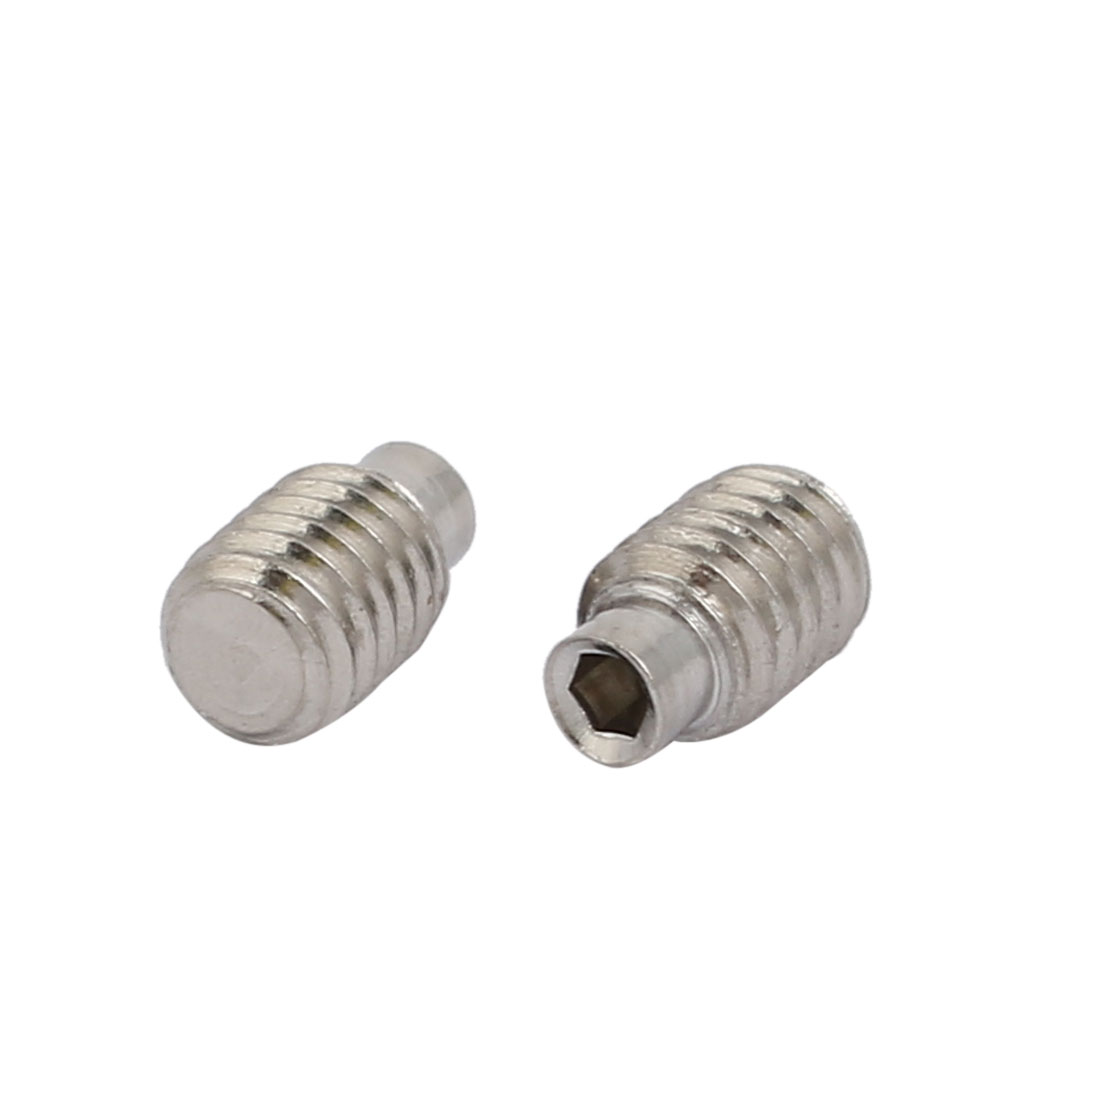 50 Pcs M4x6.7mm 304 Stainless Steel Hex Socket Drive Cylinder Point Grub Screw - image 2 of 3